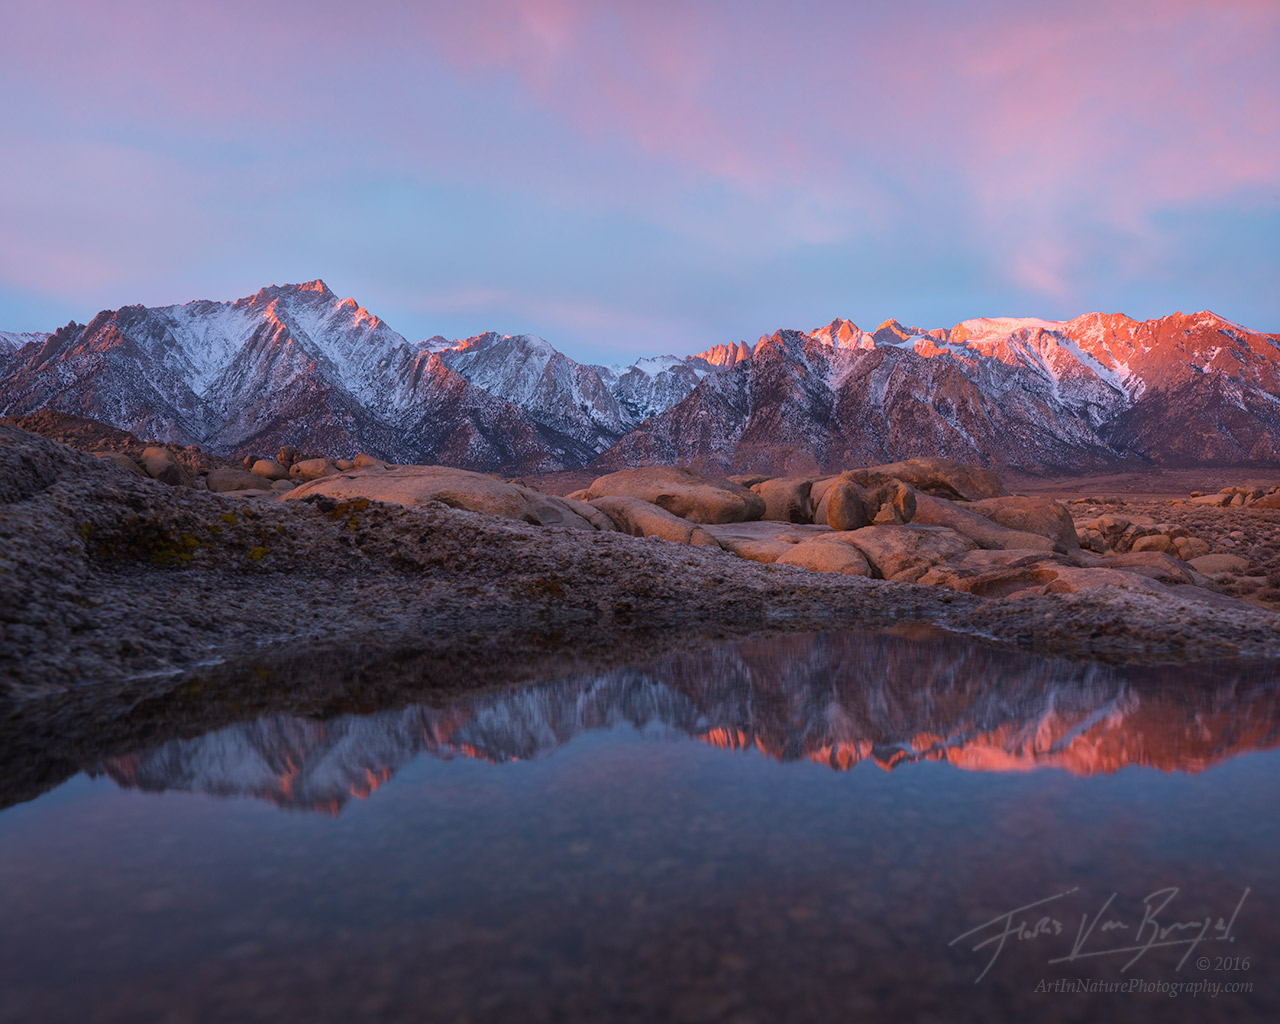 Owens Valley, Water, Lone Pine Peak, photo